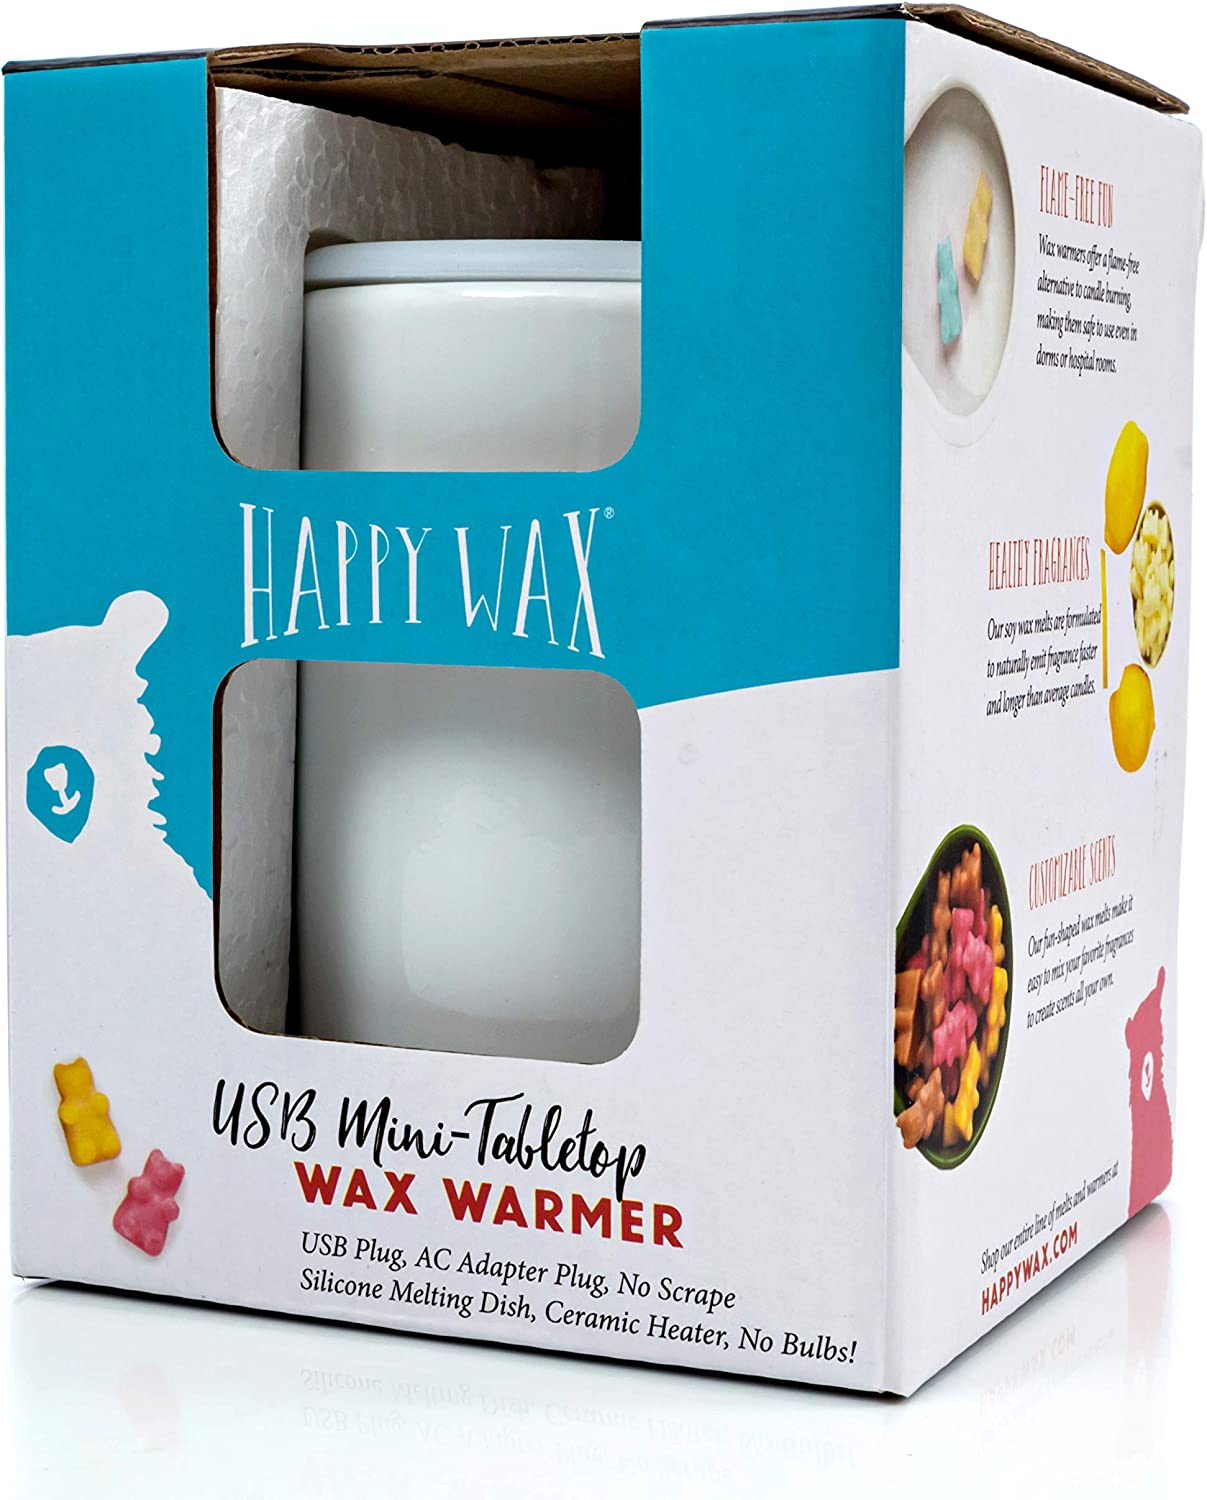 Happy Wax New Mini Tabletop Wax Warmer In White Without Ac Adapter Amazon Co Uk Health Personal Care